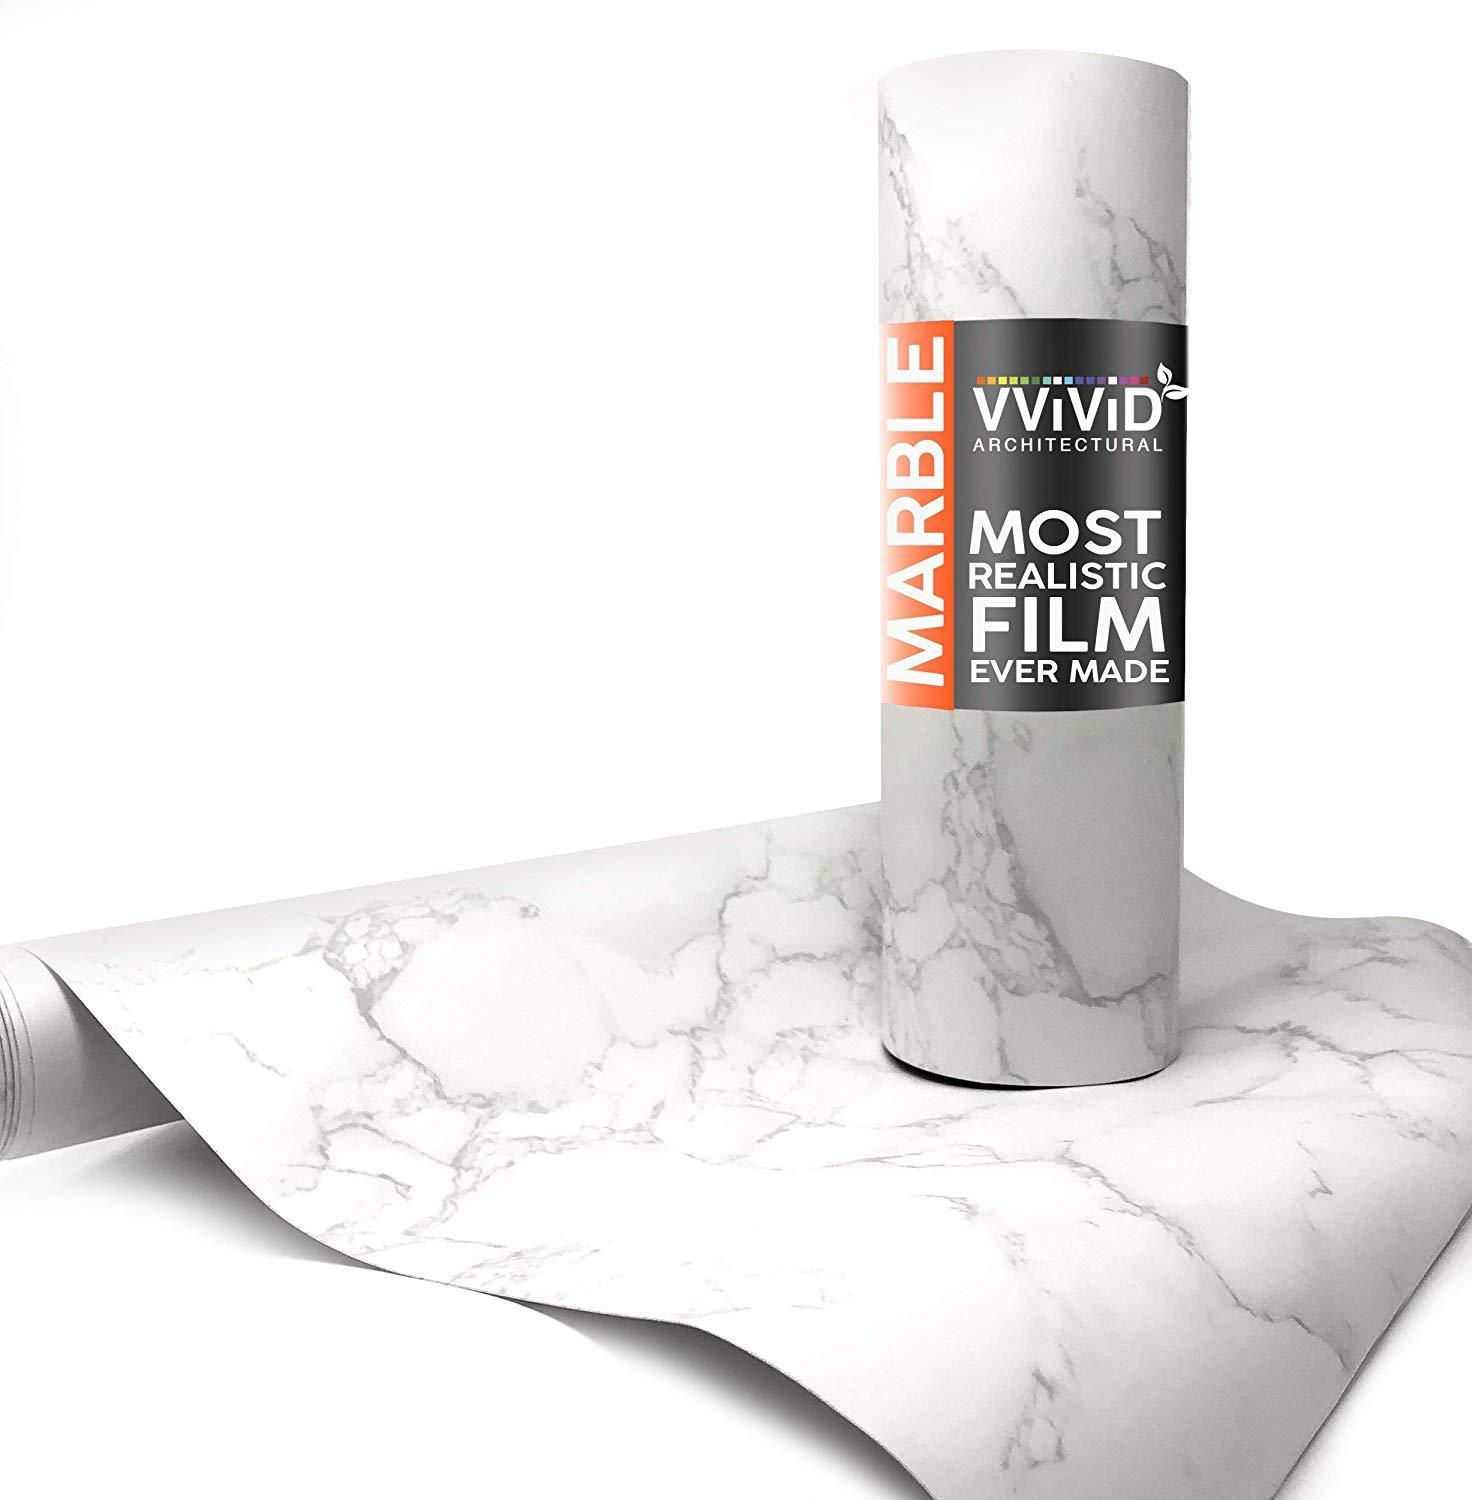 Vvivid Carrara White Marble Matte Architectural Film The Vvivid Shop